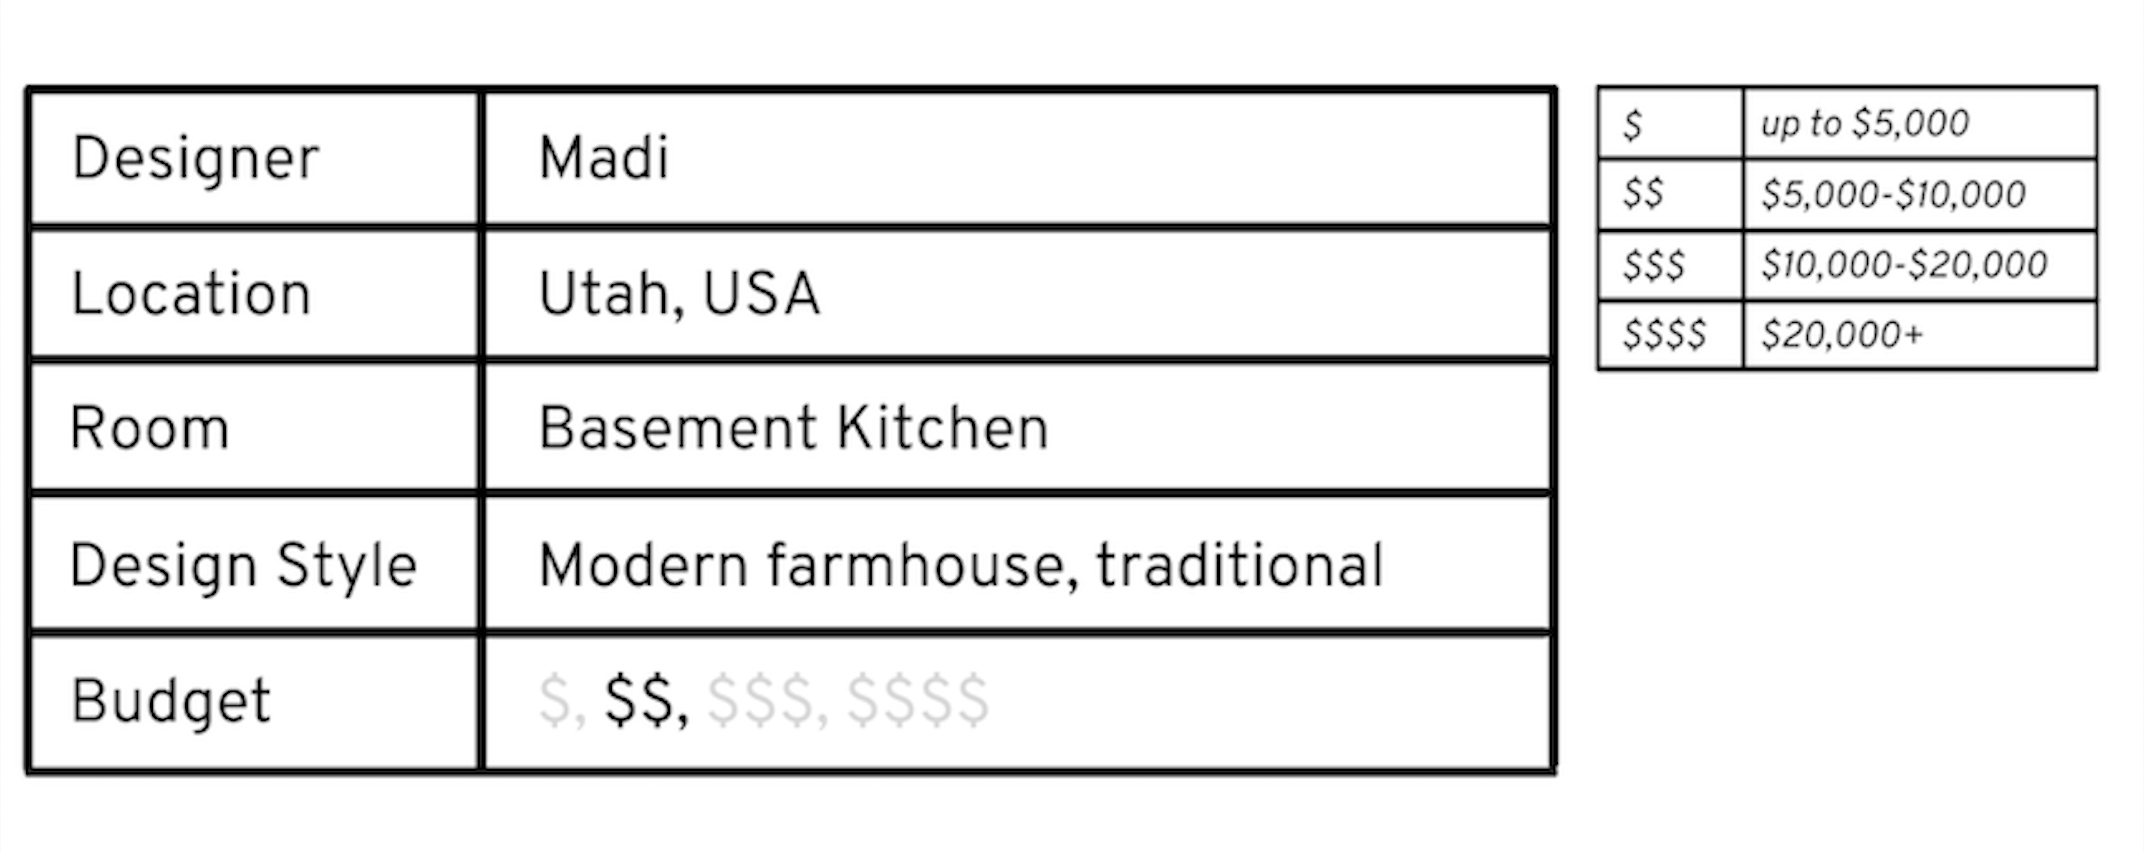 information on the basement kitchen project